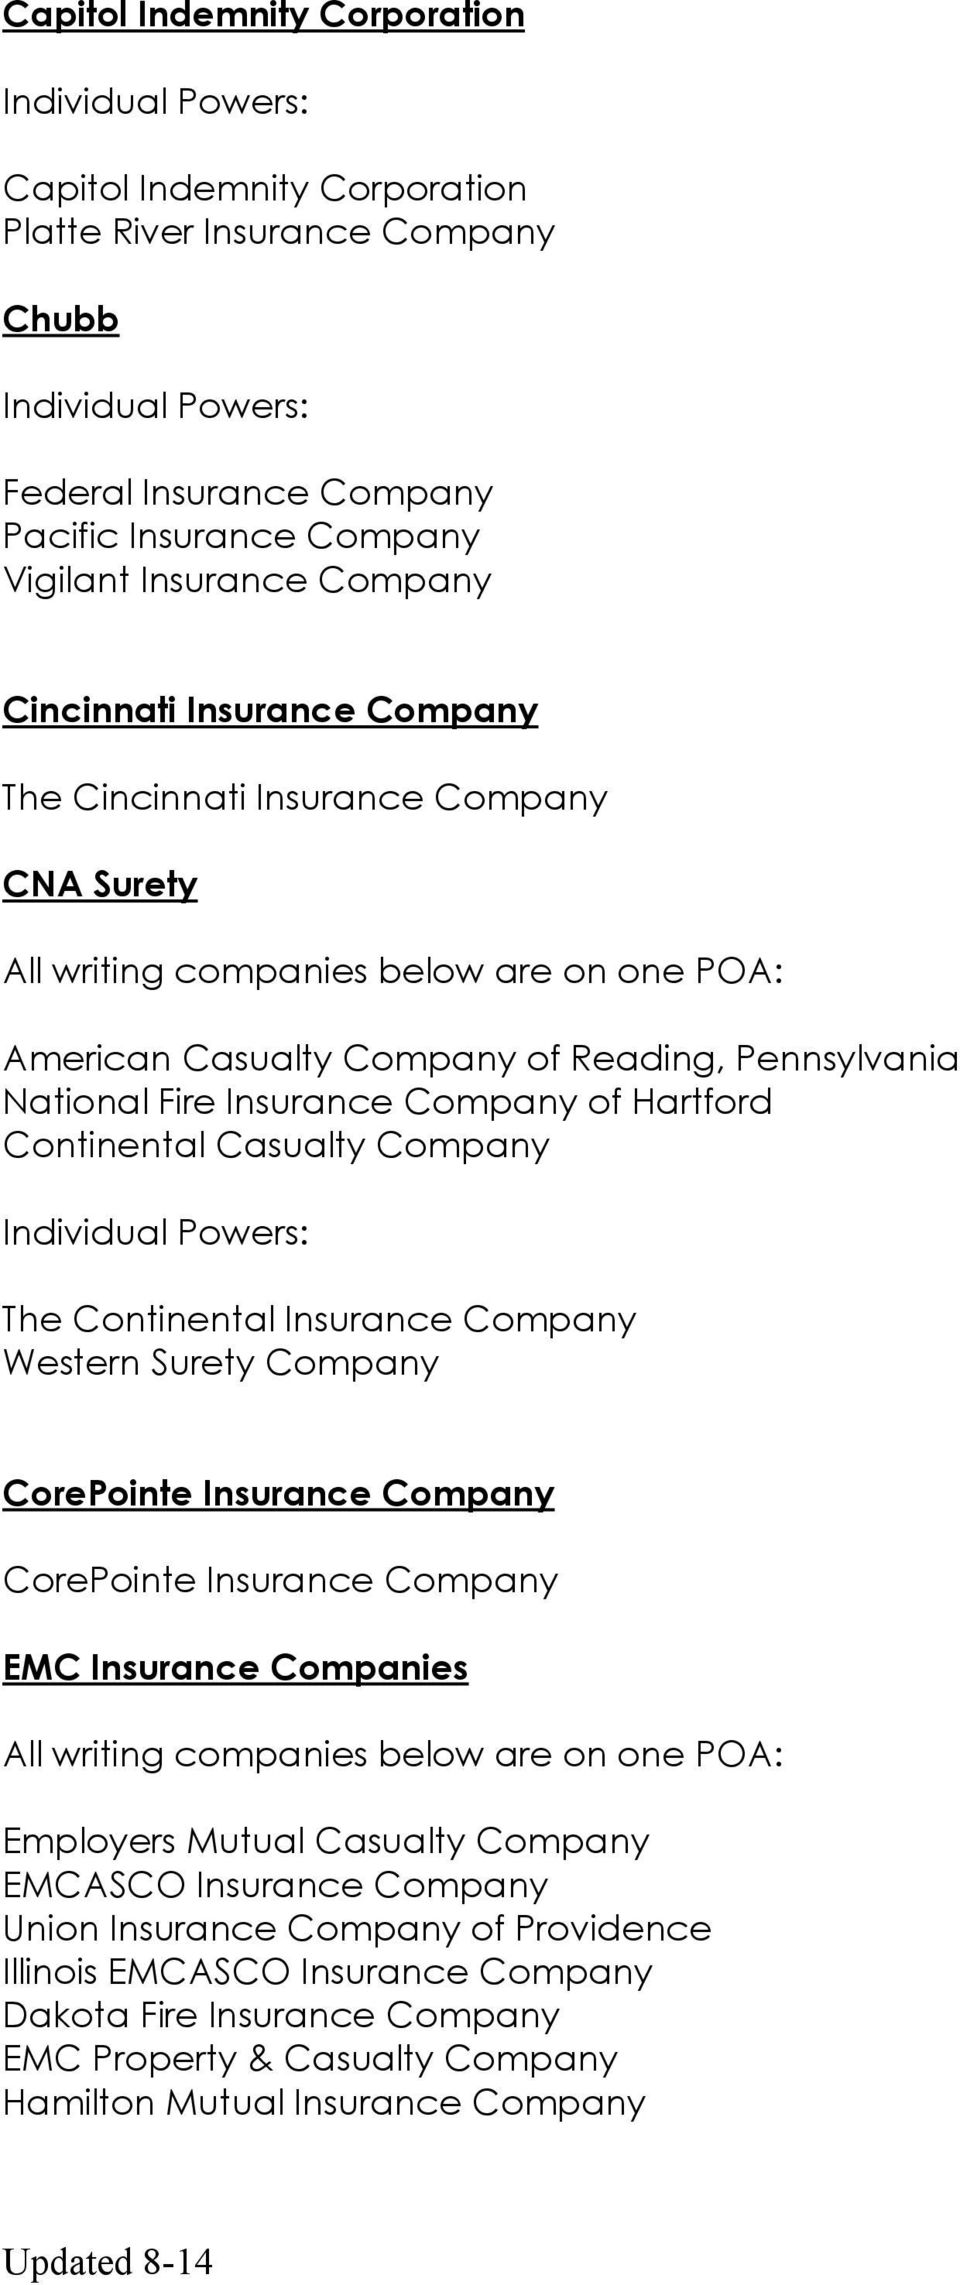 Casualty Company The Continental Insurance Company Western Surety Company CorePointe Insurance Company CorePointe Insurance Company EMC Insurance Companies Employers Mutual Casualty